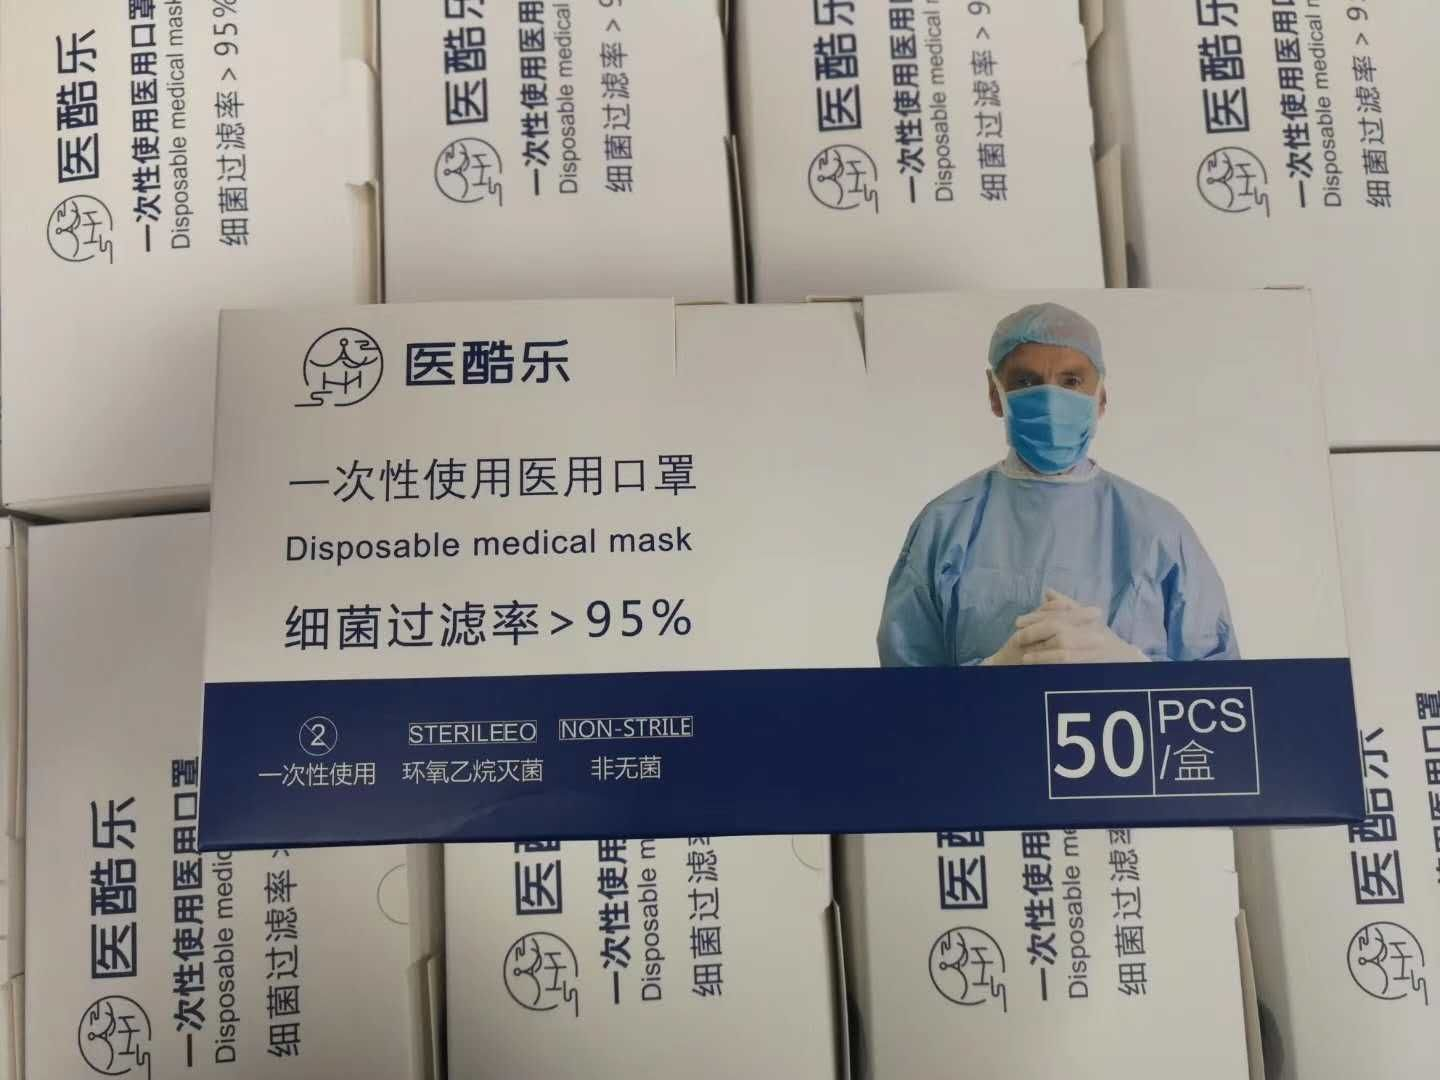 50PCS 3-layer Medical Masks Anti-bacteria Disposable Protection